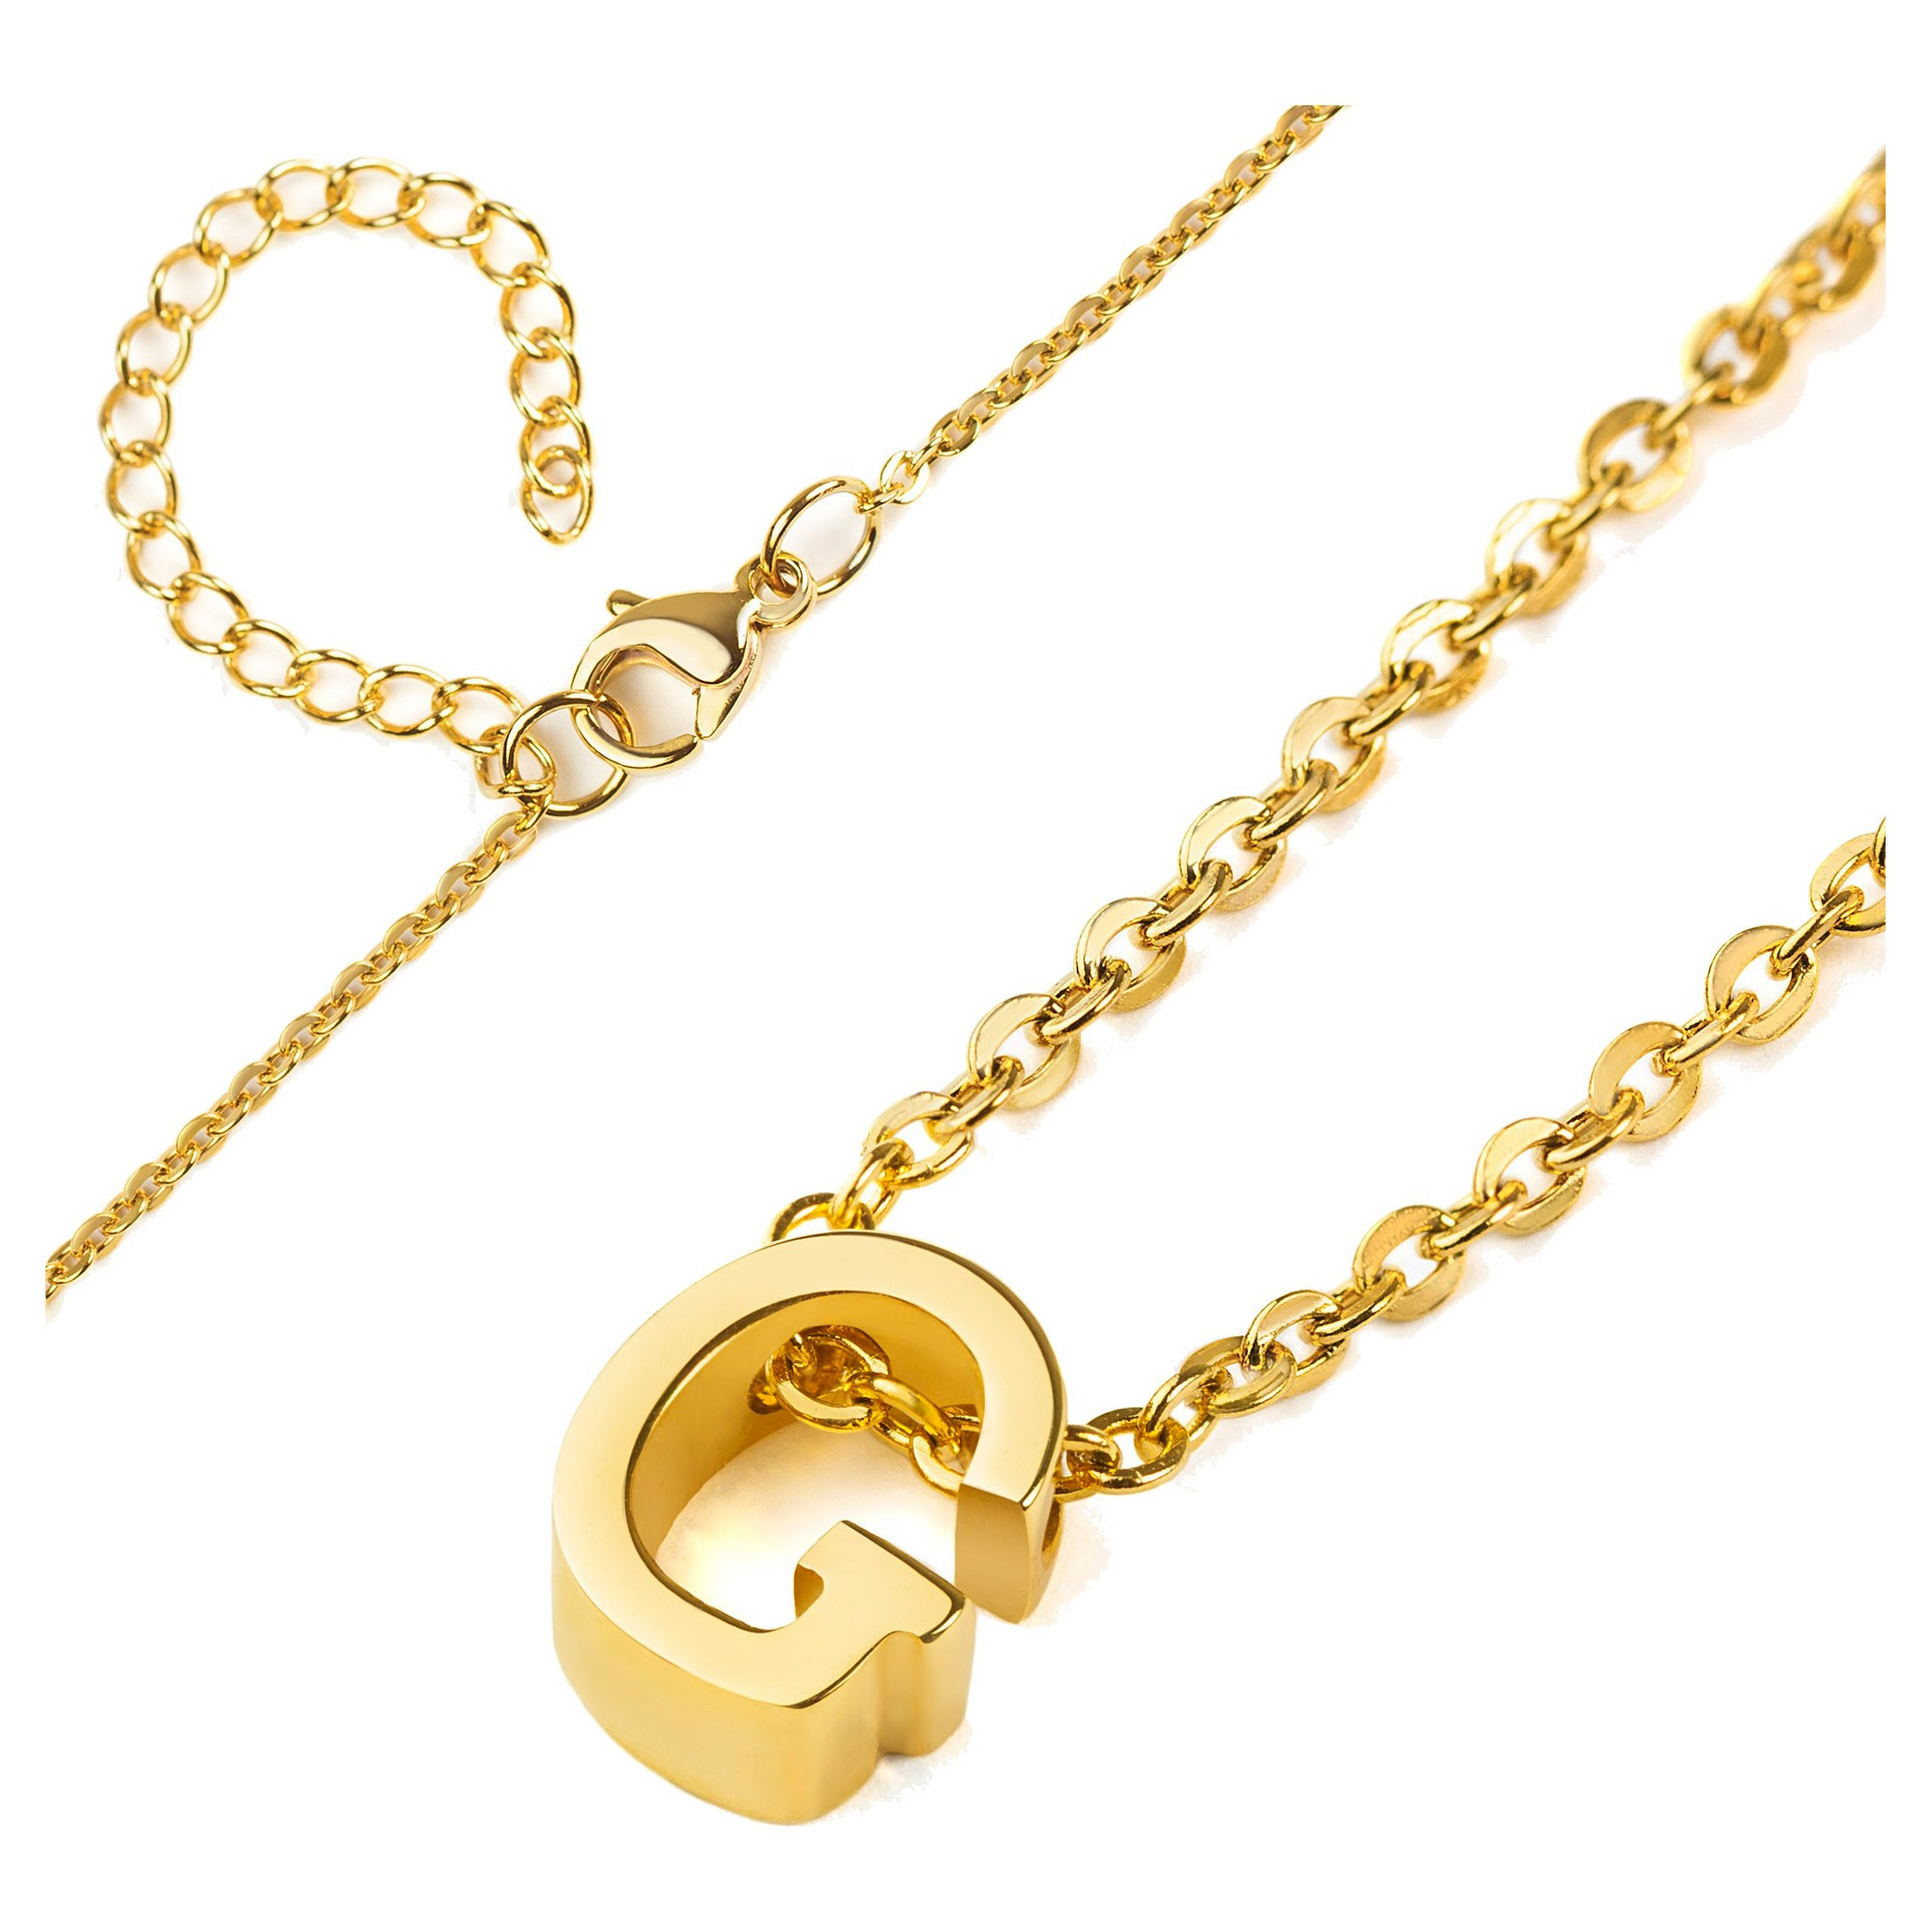 Women's Elya Stainless Steel Initial Pendant Necklace 'z' in 18K Gold, Size: Z